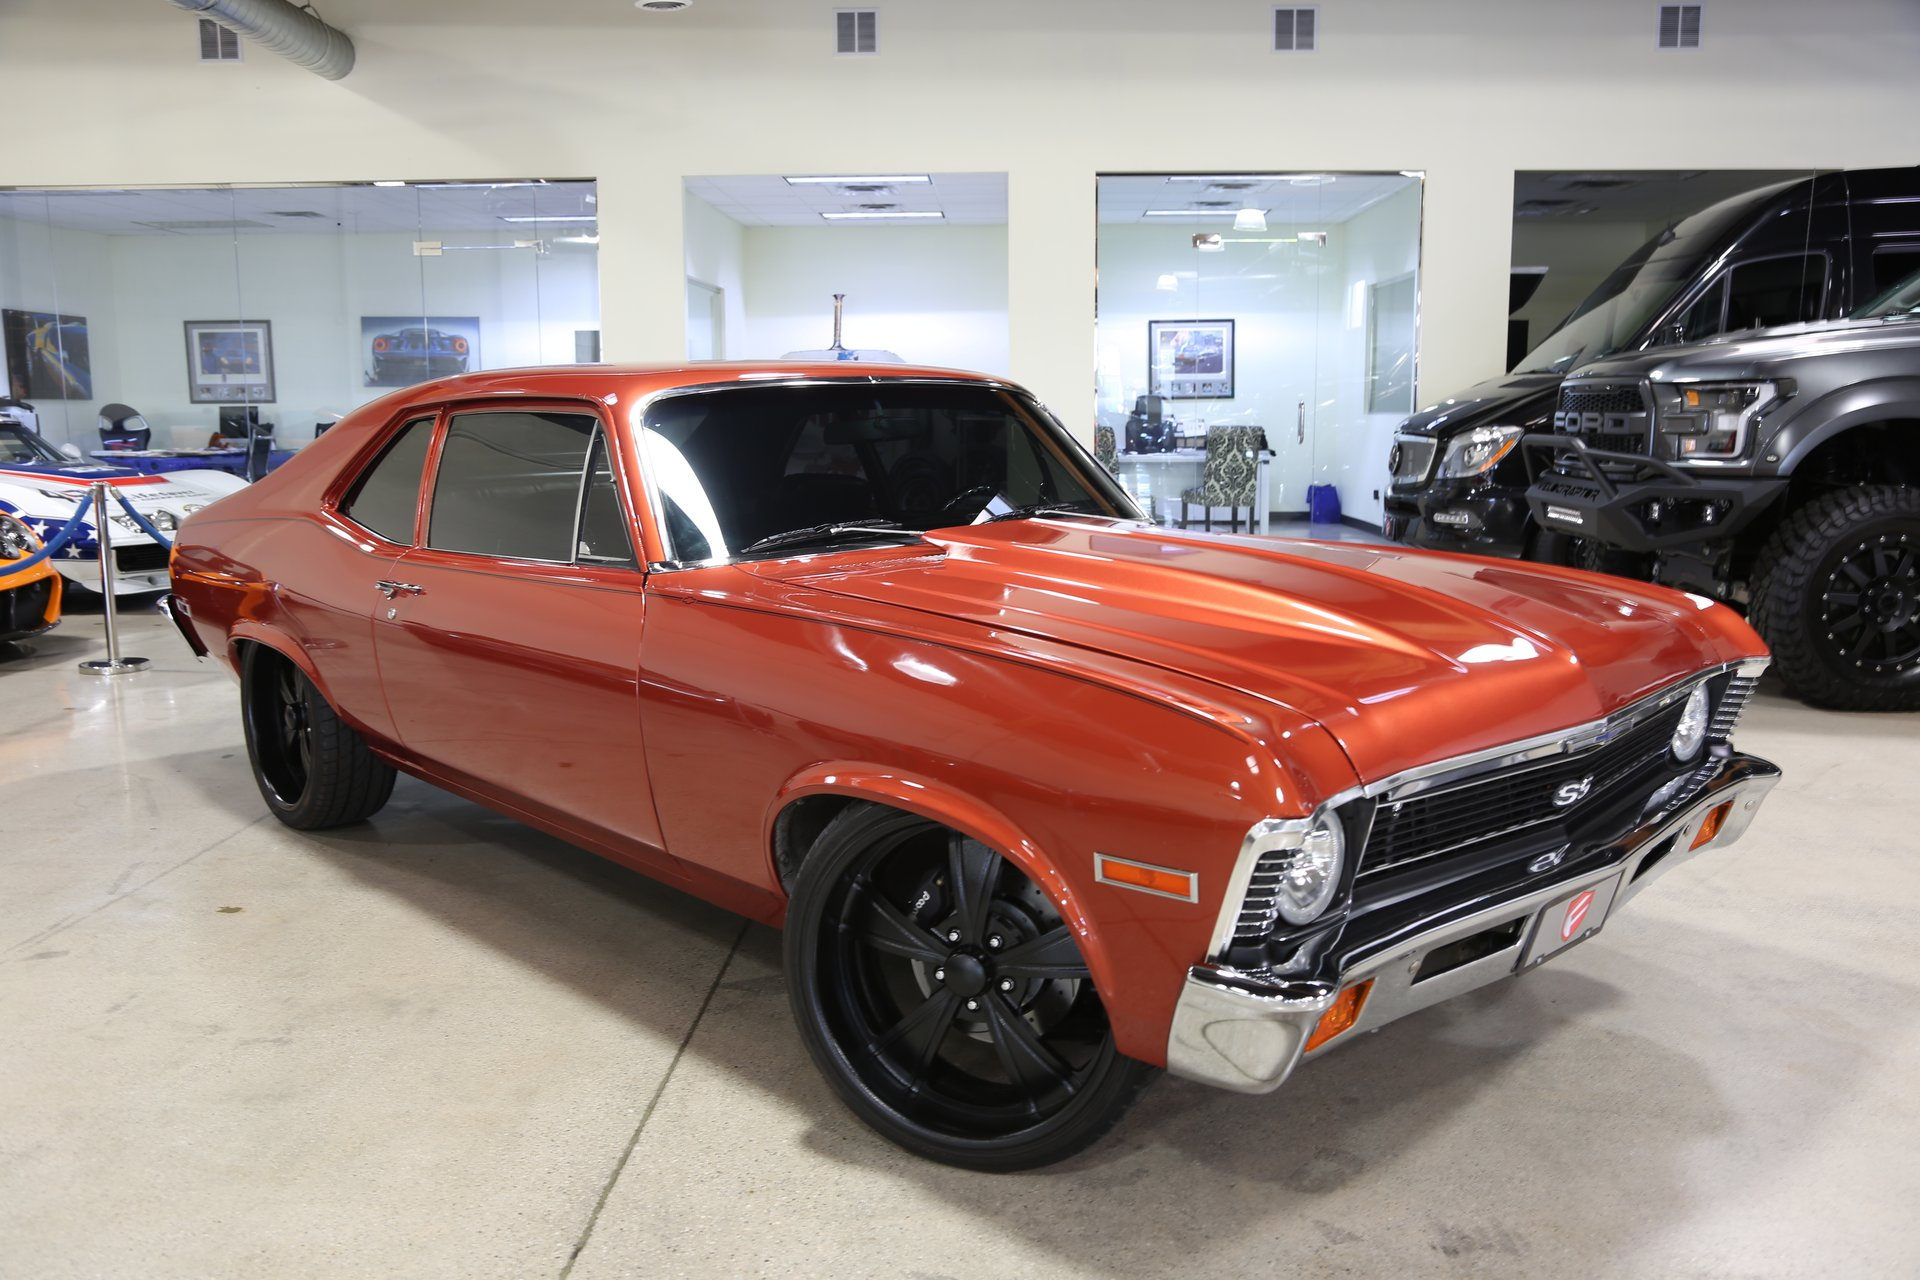 1972 Chevrolet Nova Fusion Luxury Motors